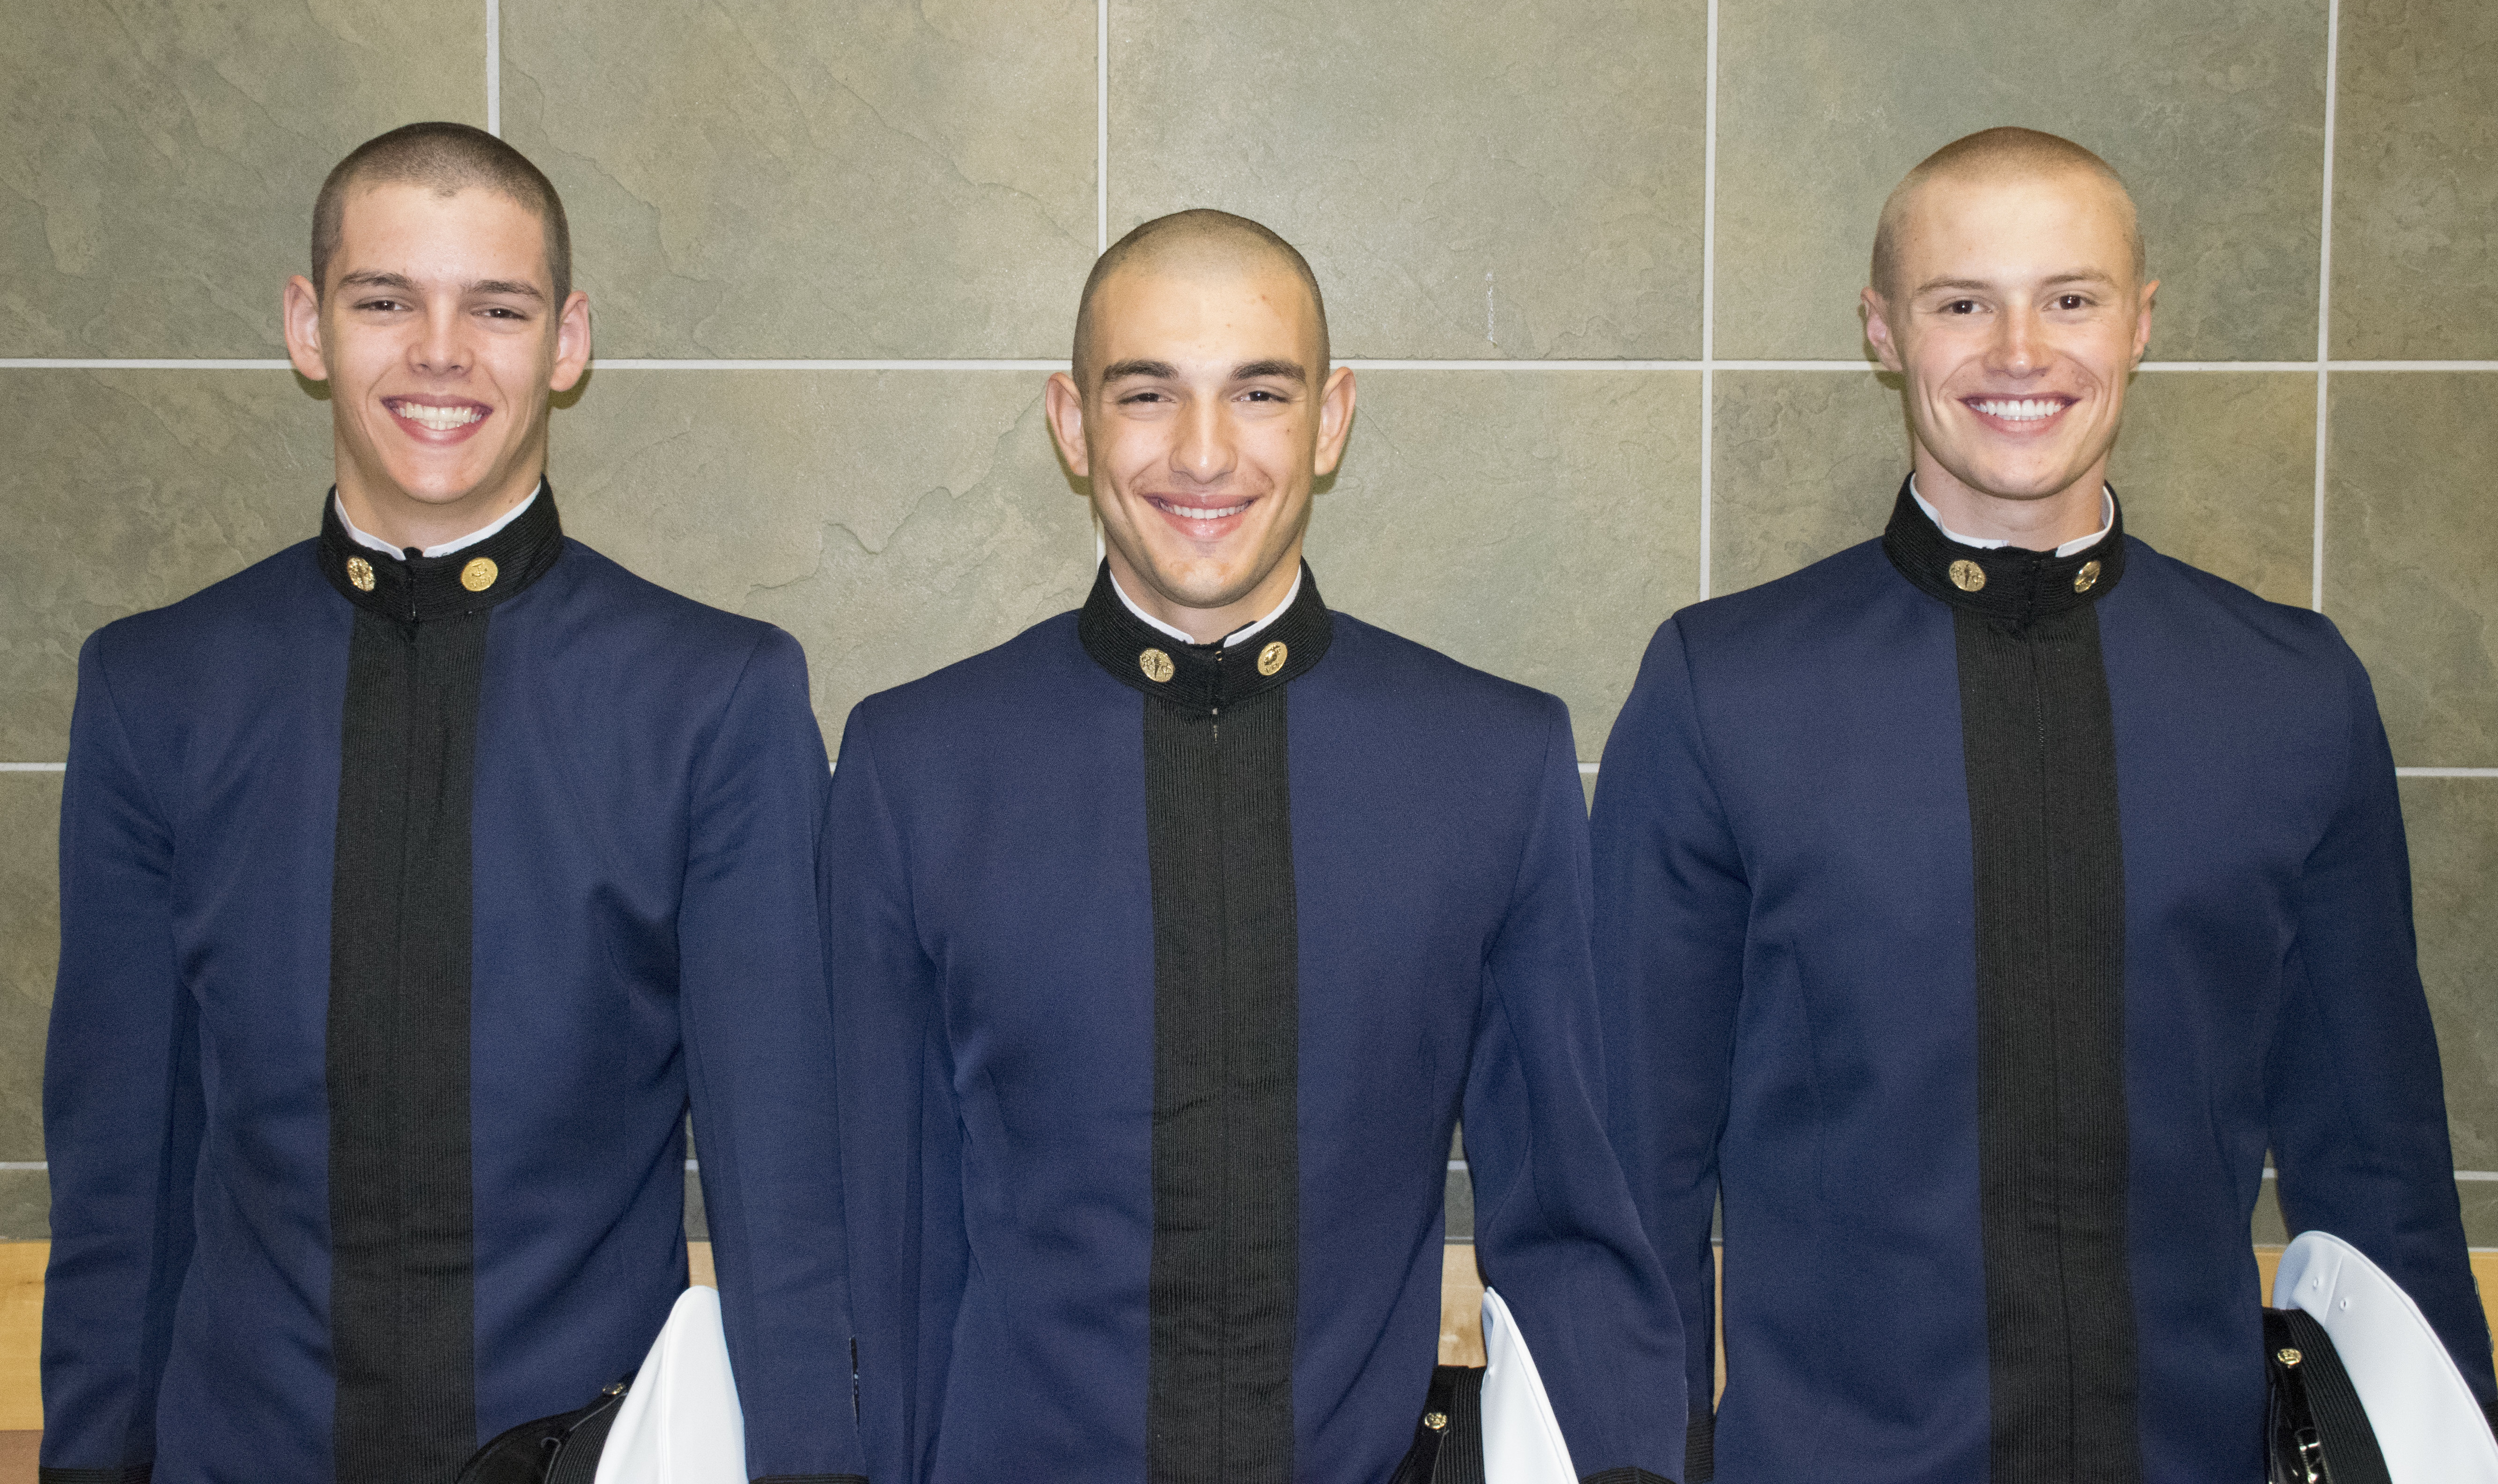 From left to right are Cadets Thomas DiBiaso, Brandon Boccher, and Philip Anderson.